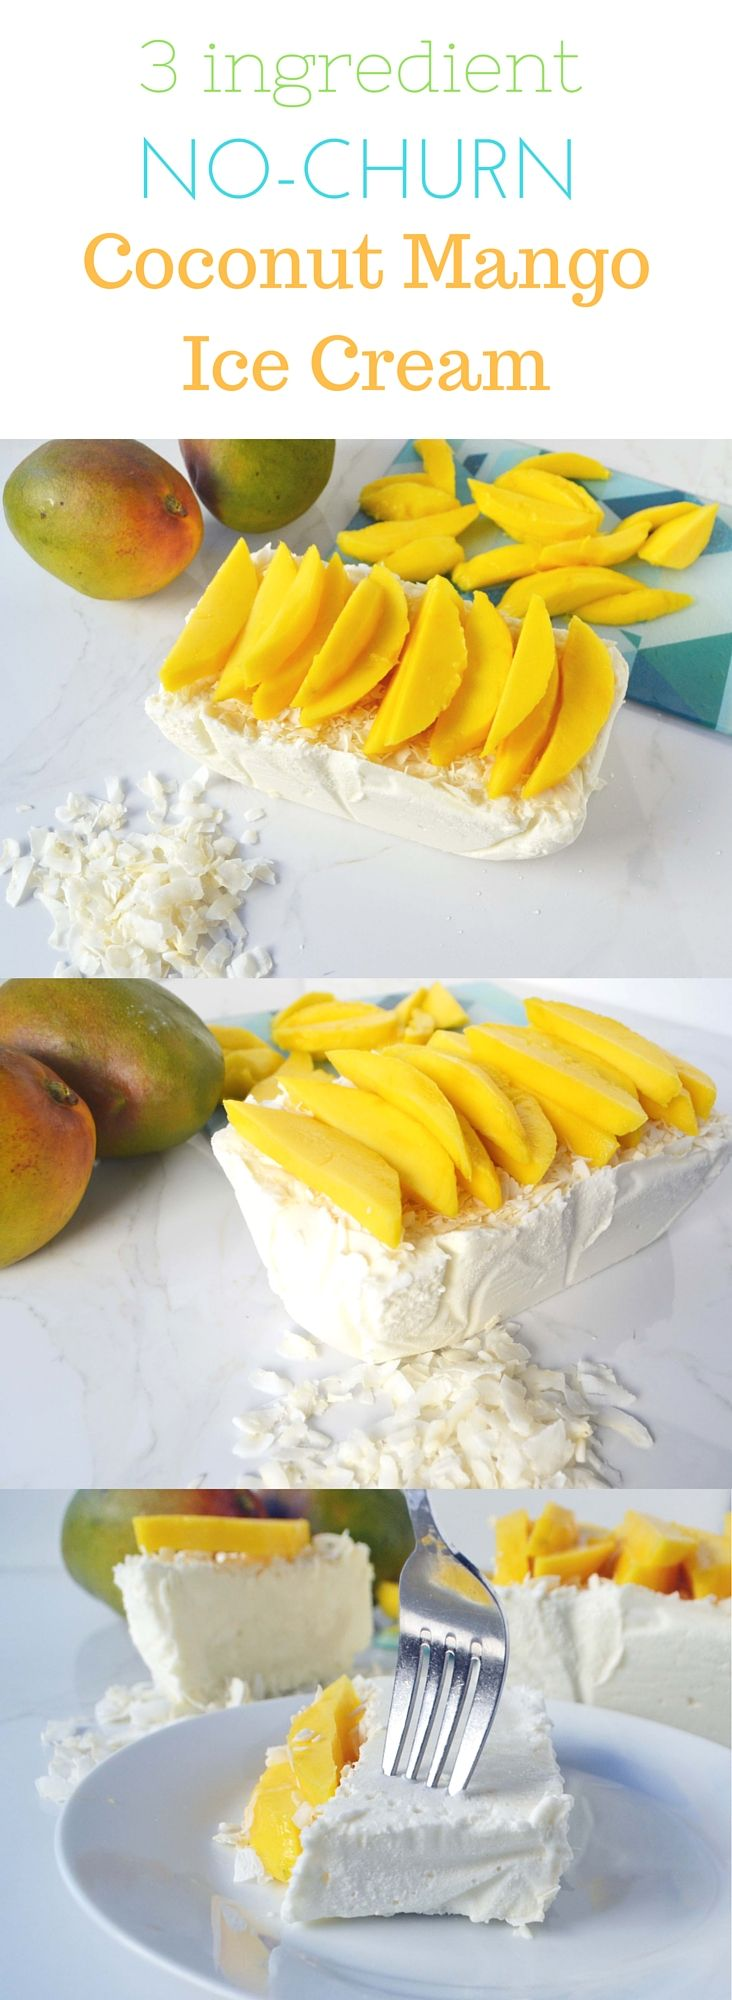 3 Ingredient No-Churn Mango Semifreddo Ice Cream. No ice cream maker required. Super simple, easy, impressive dessert.